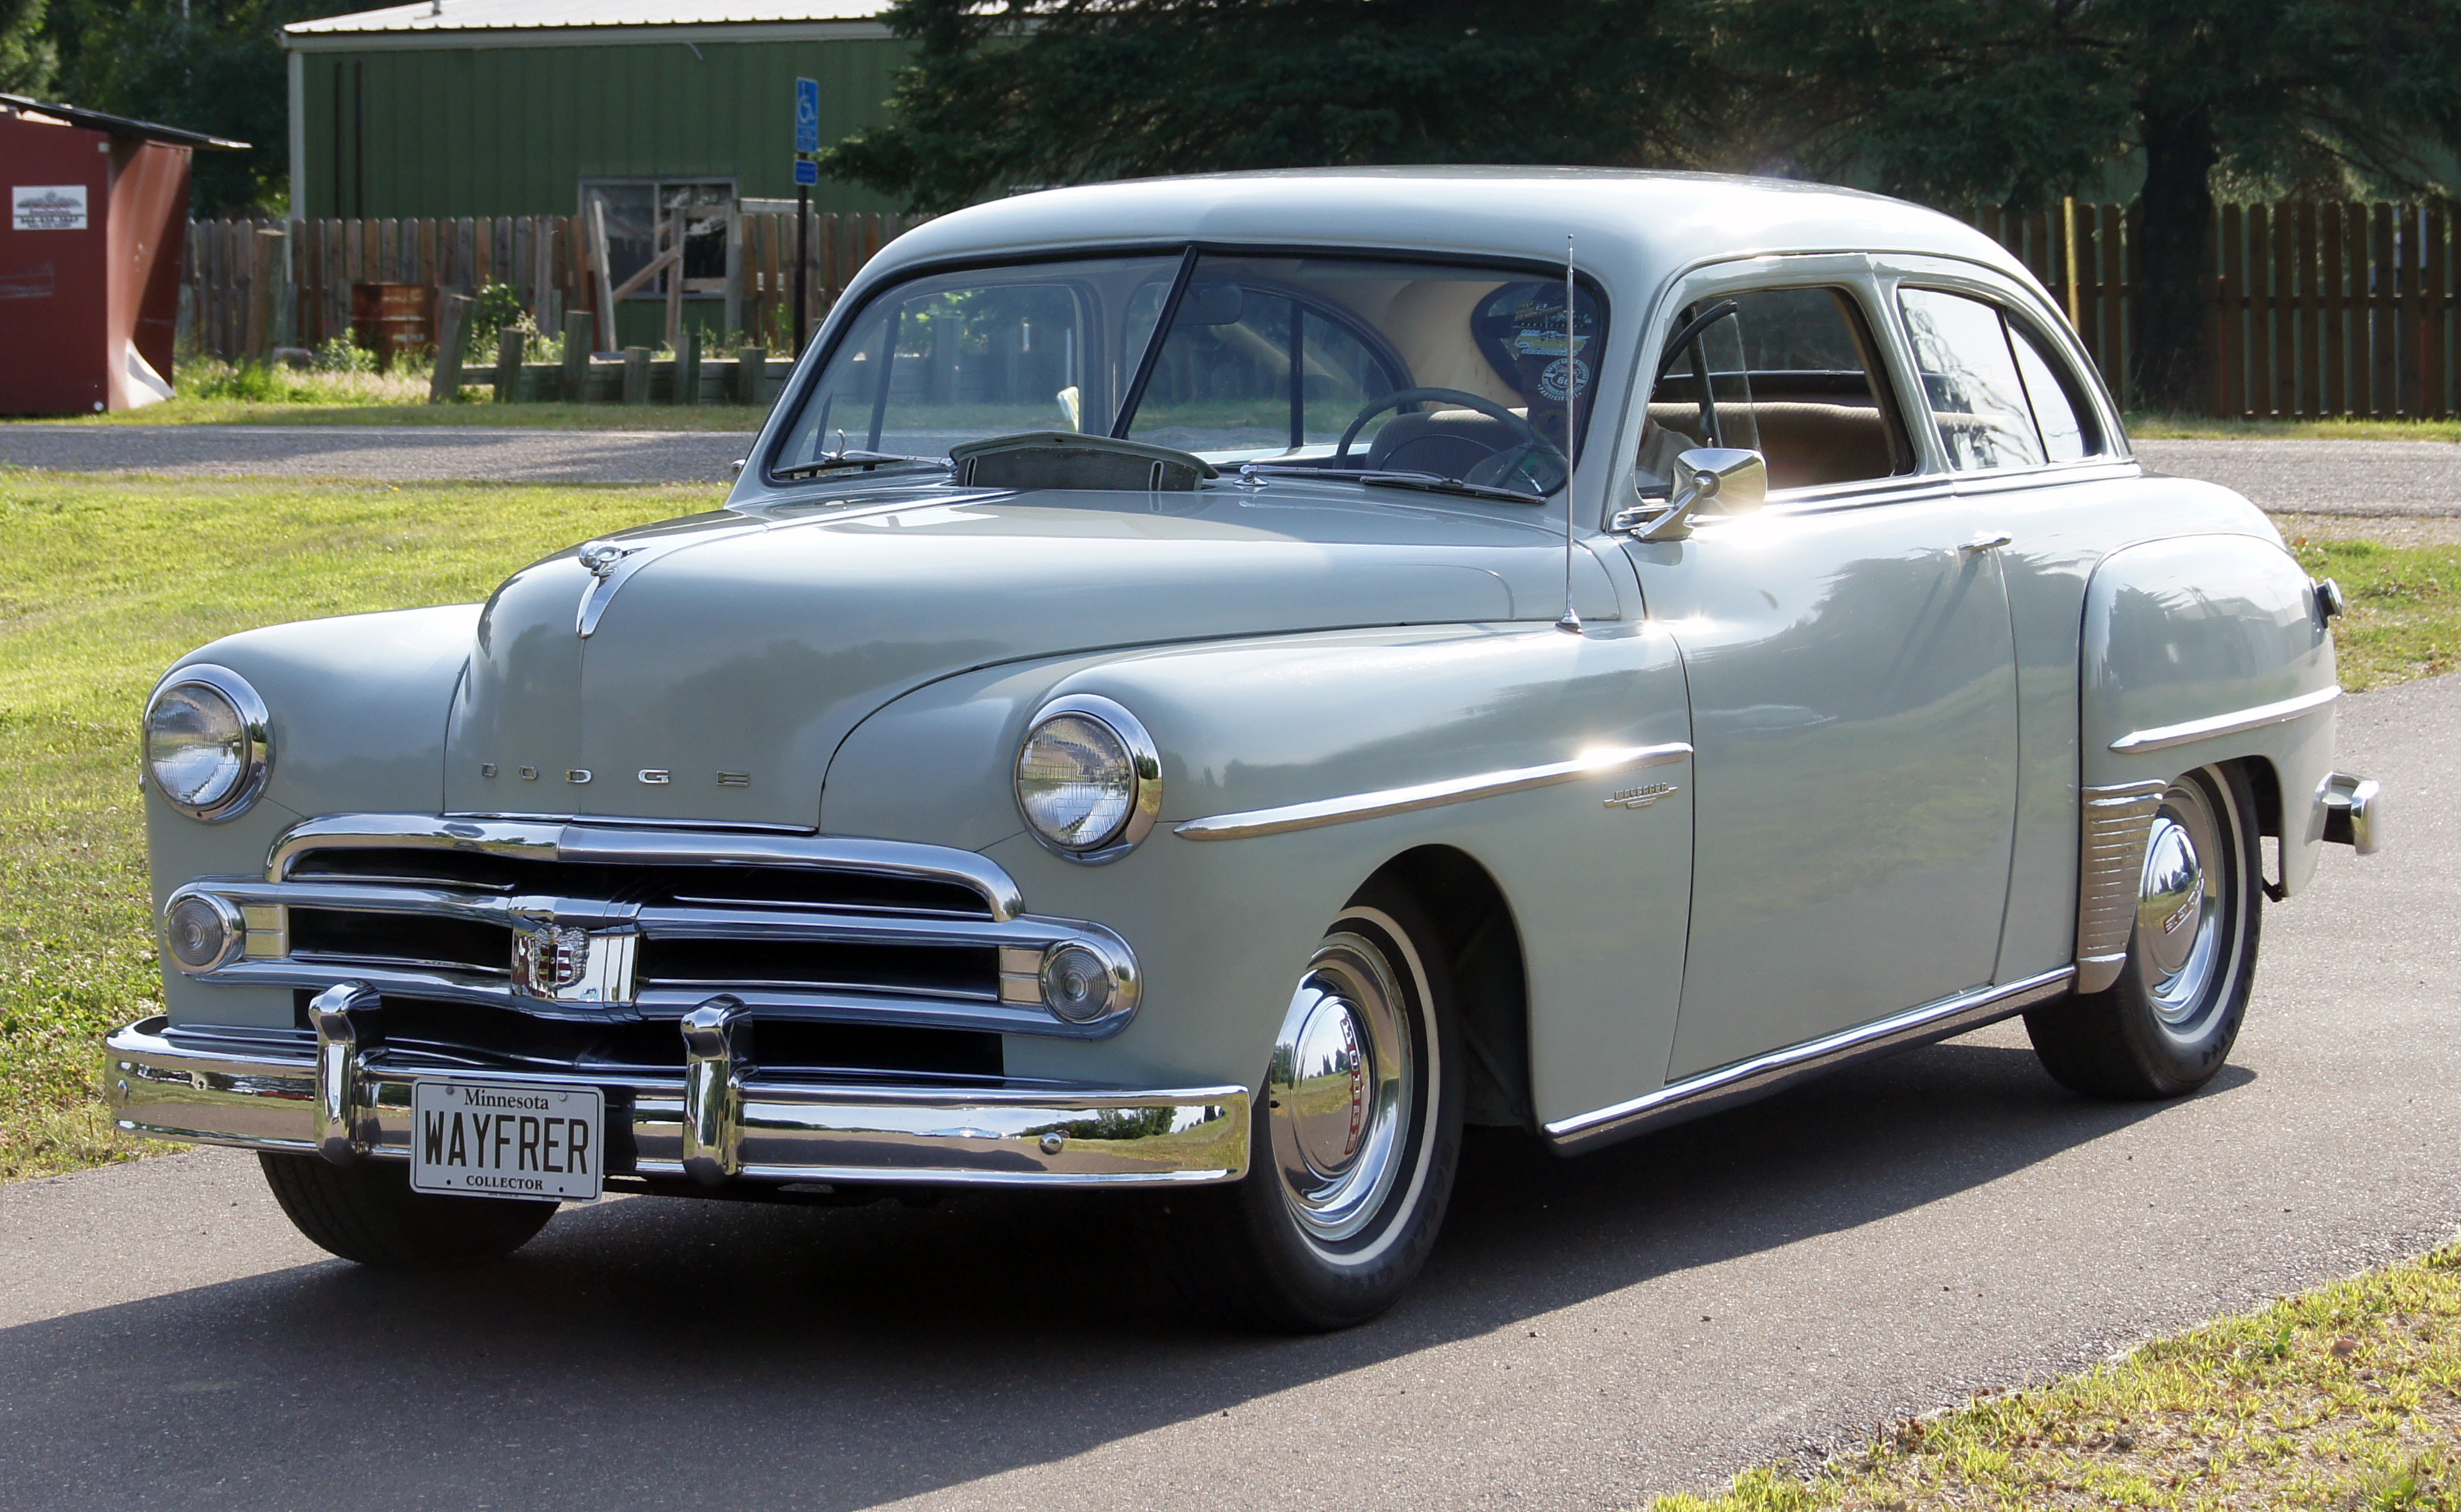 file 1950 dodge wayfarer 2 door sedan front